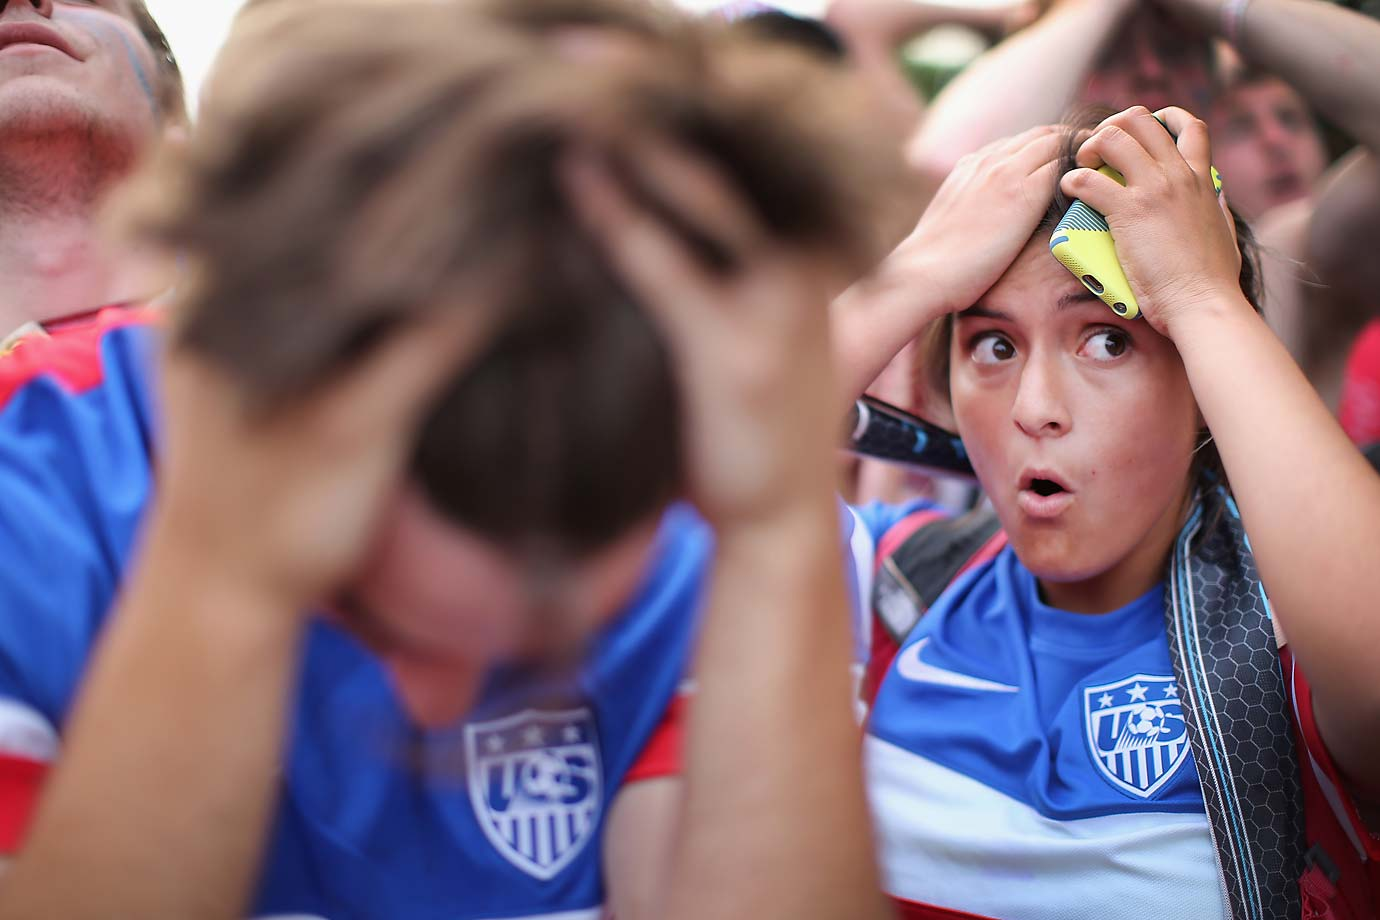 U.S. fans across the nation and abroad had a similar reaction to the late goal by Portugal that denied the U.S. a chance of sealing an early knockout berth.